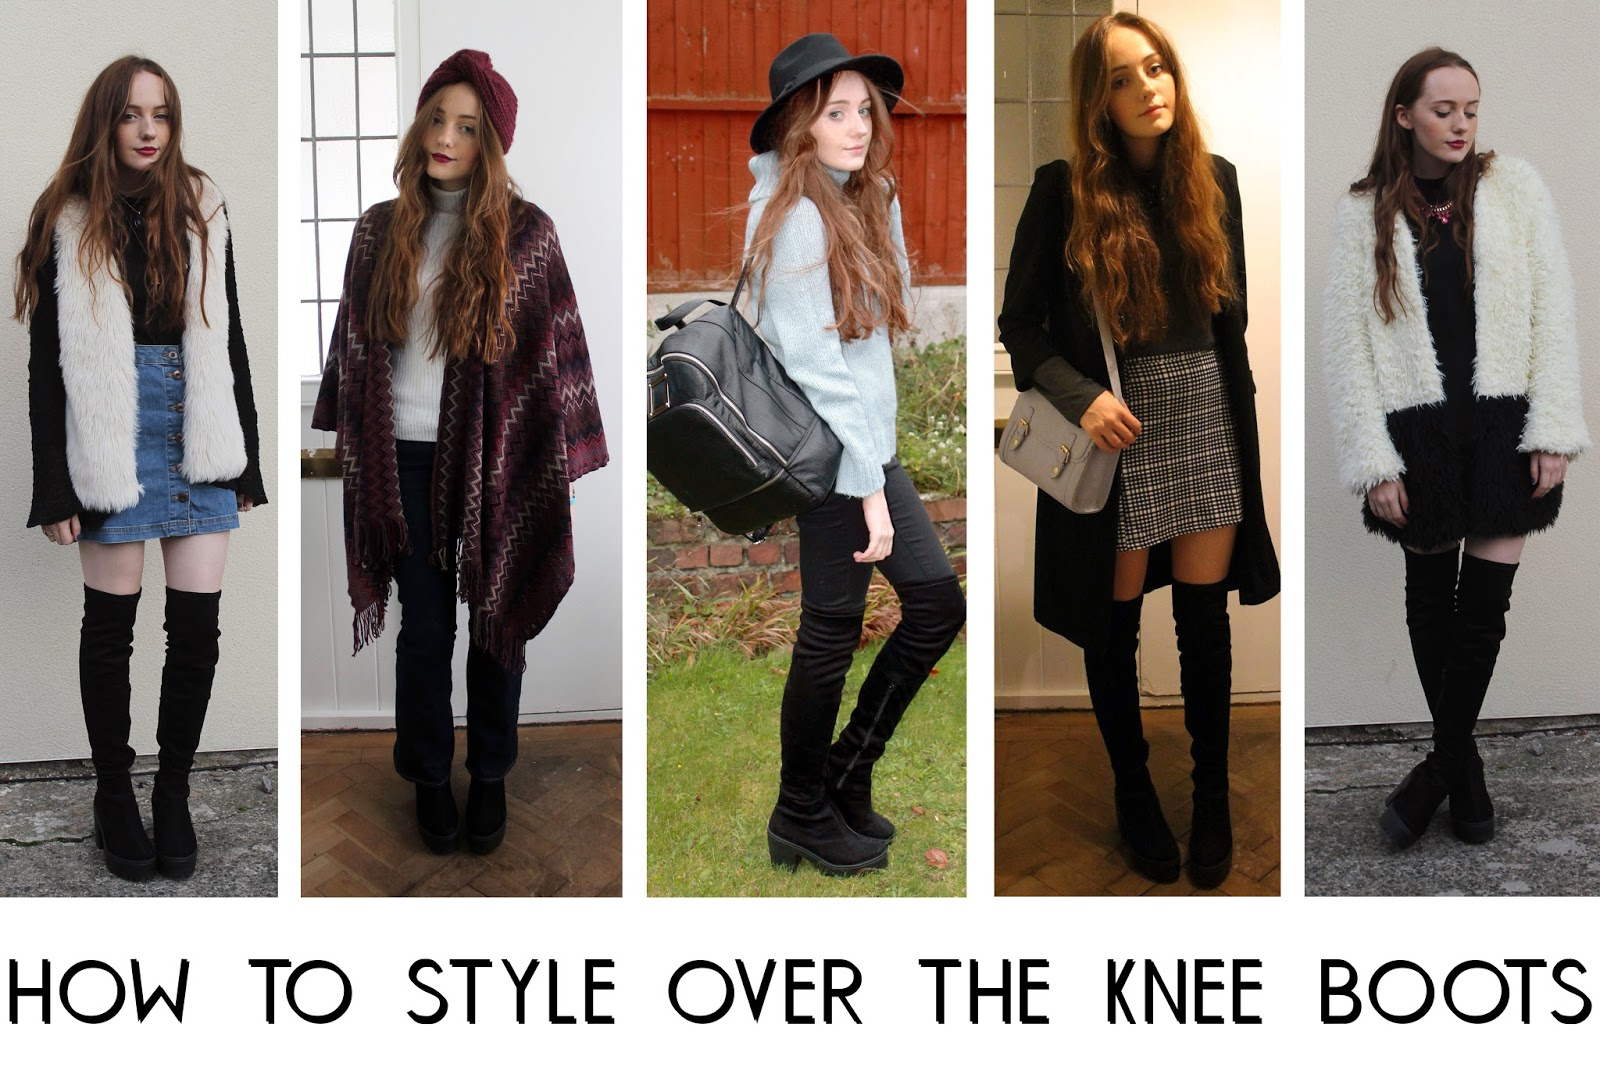 how to style over the knee boots five ways - casual, cosy, night out